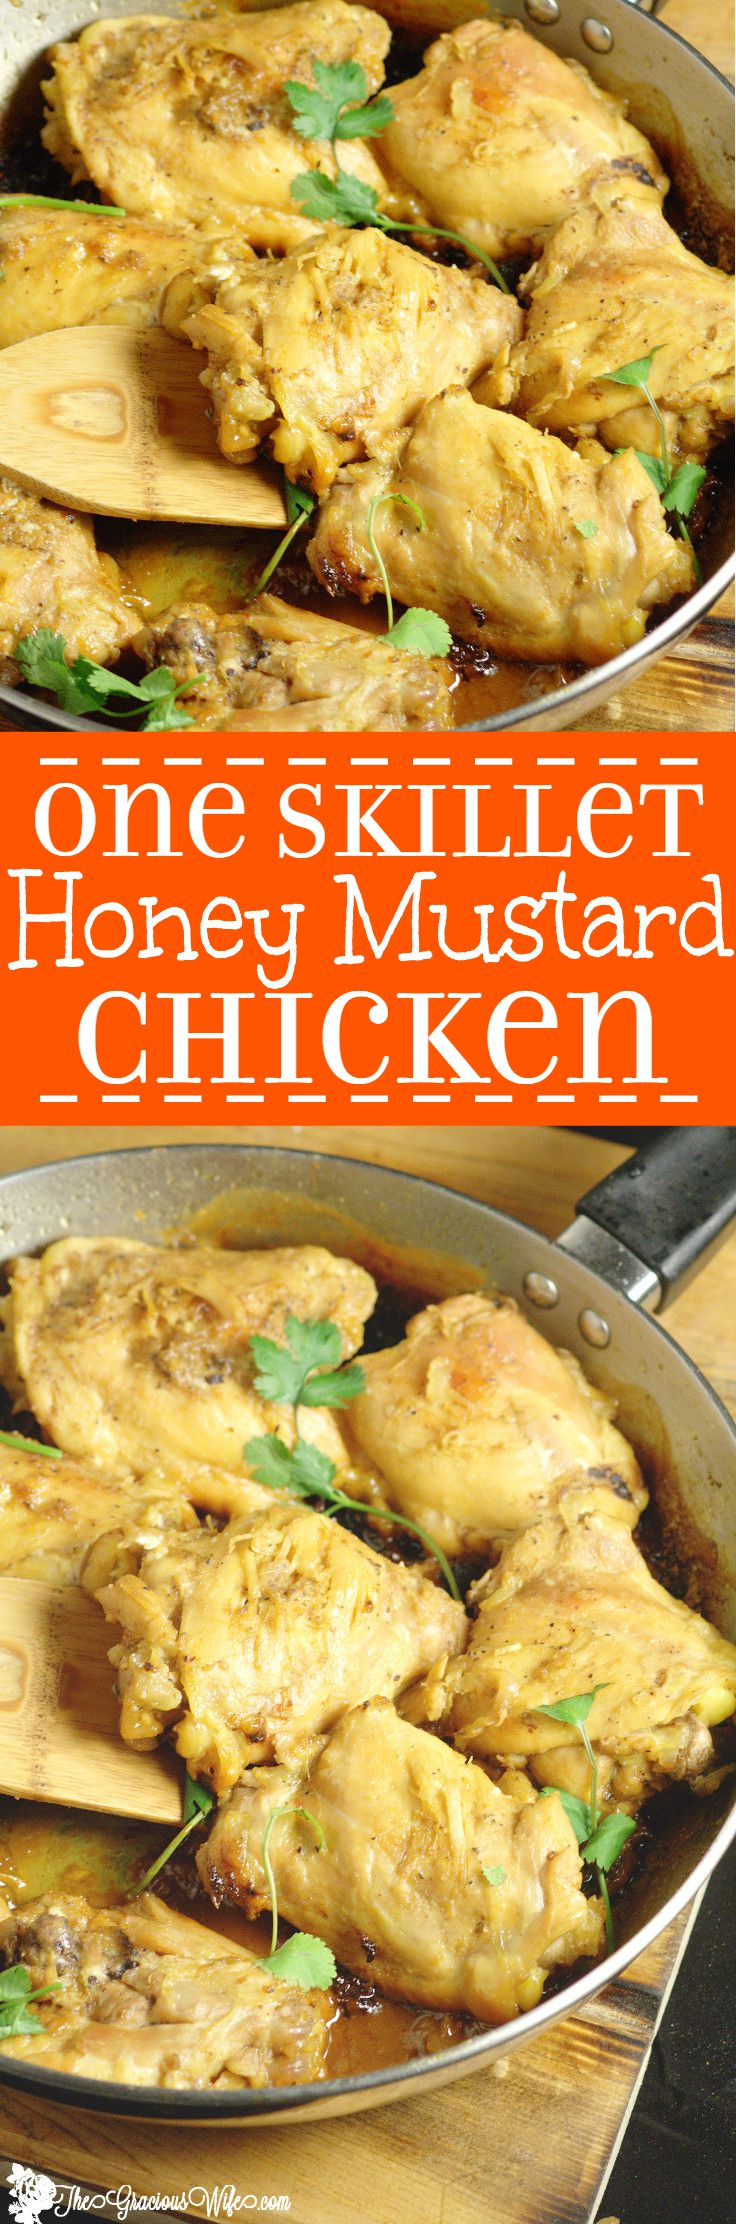 Easy Honey Mustard Chicken Recipe- A sweet and tangy quick and easy dinner idea recipe. Make it all in 30 minutes in one pot!! So good!